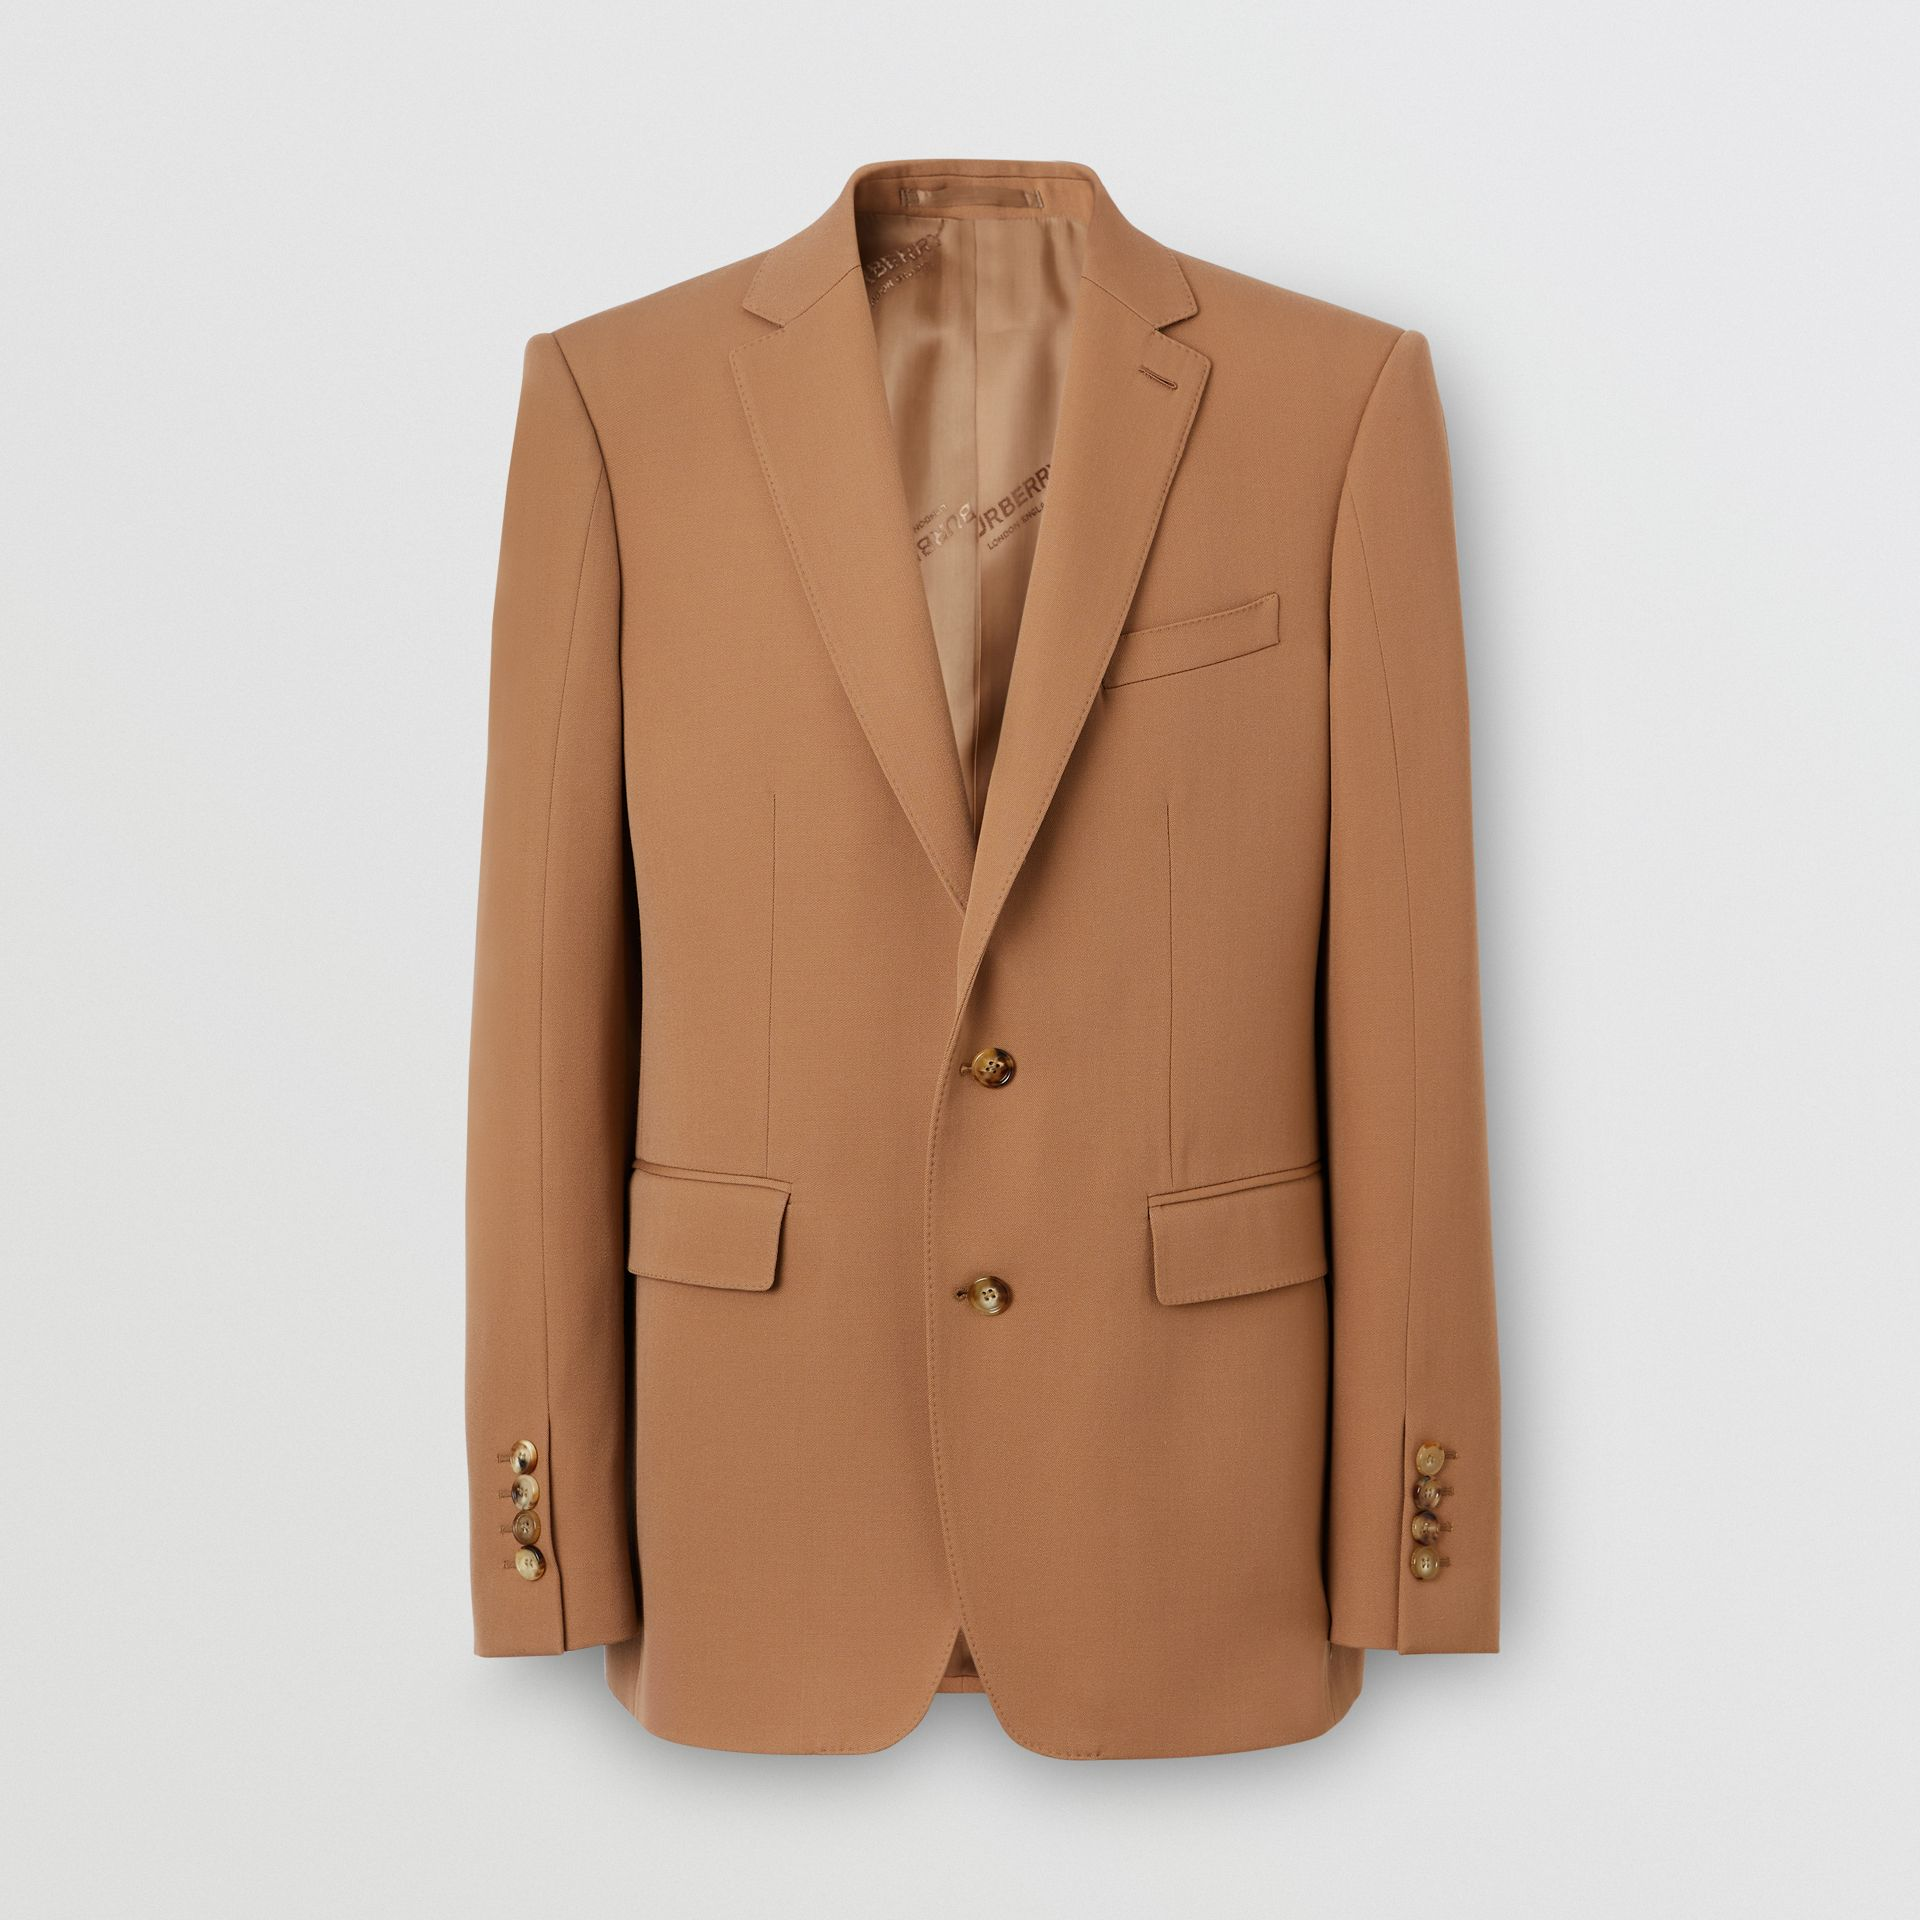 Camel Hair Coat with Detachable Wool Jacket in Warm - Men | Burberry - gallery image 3